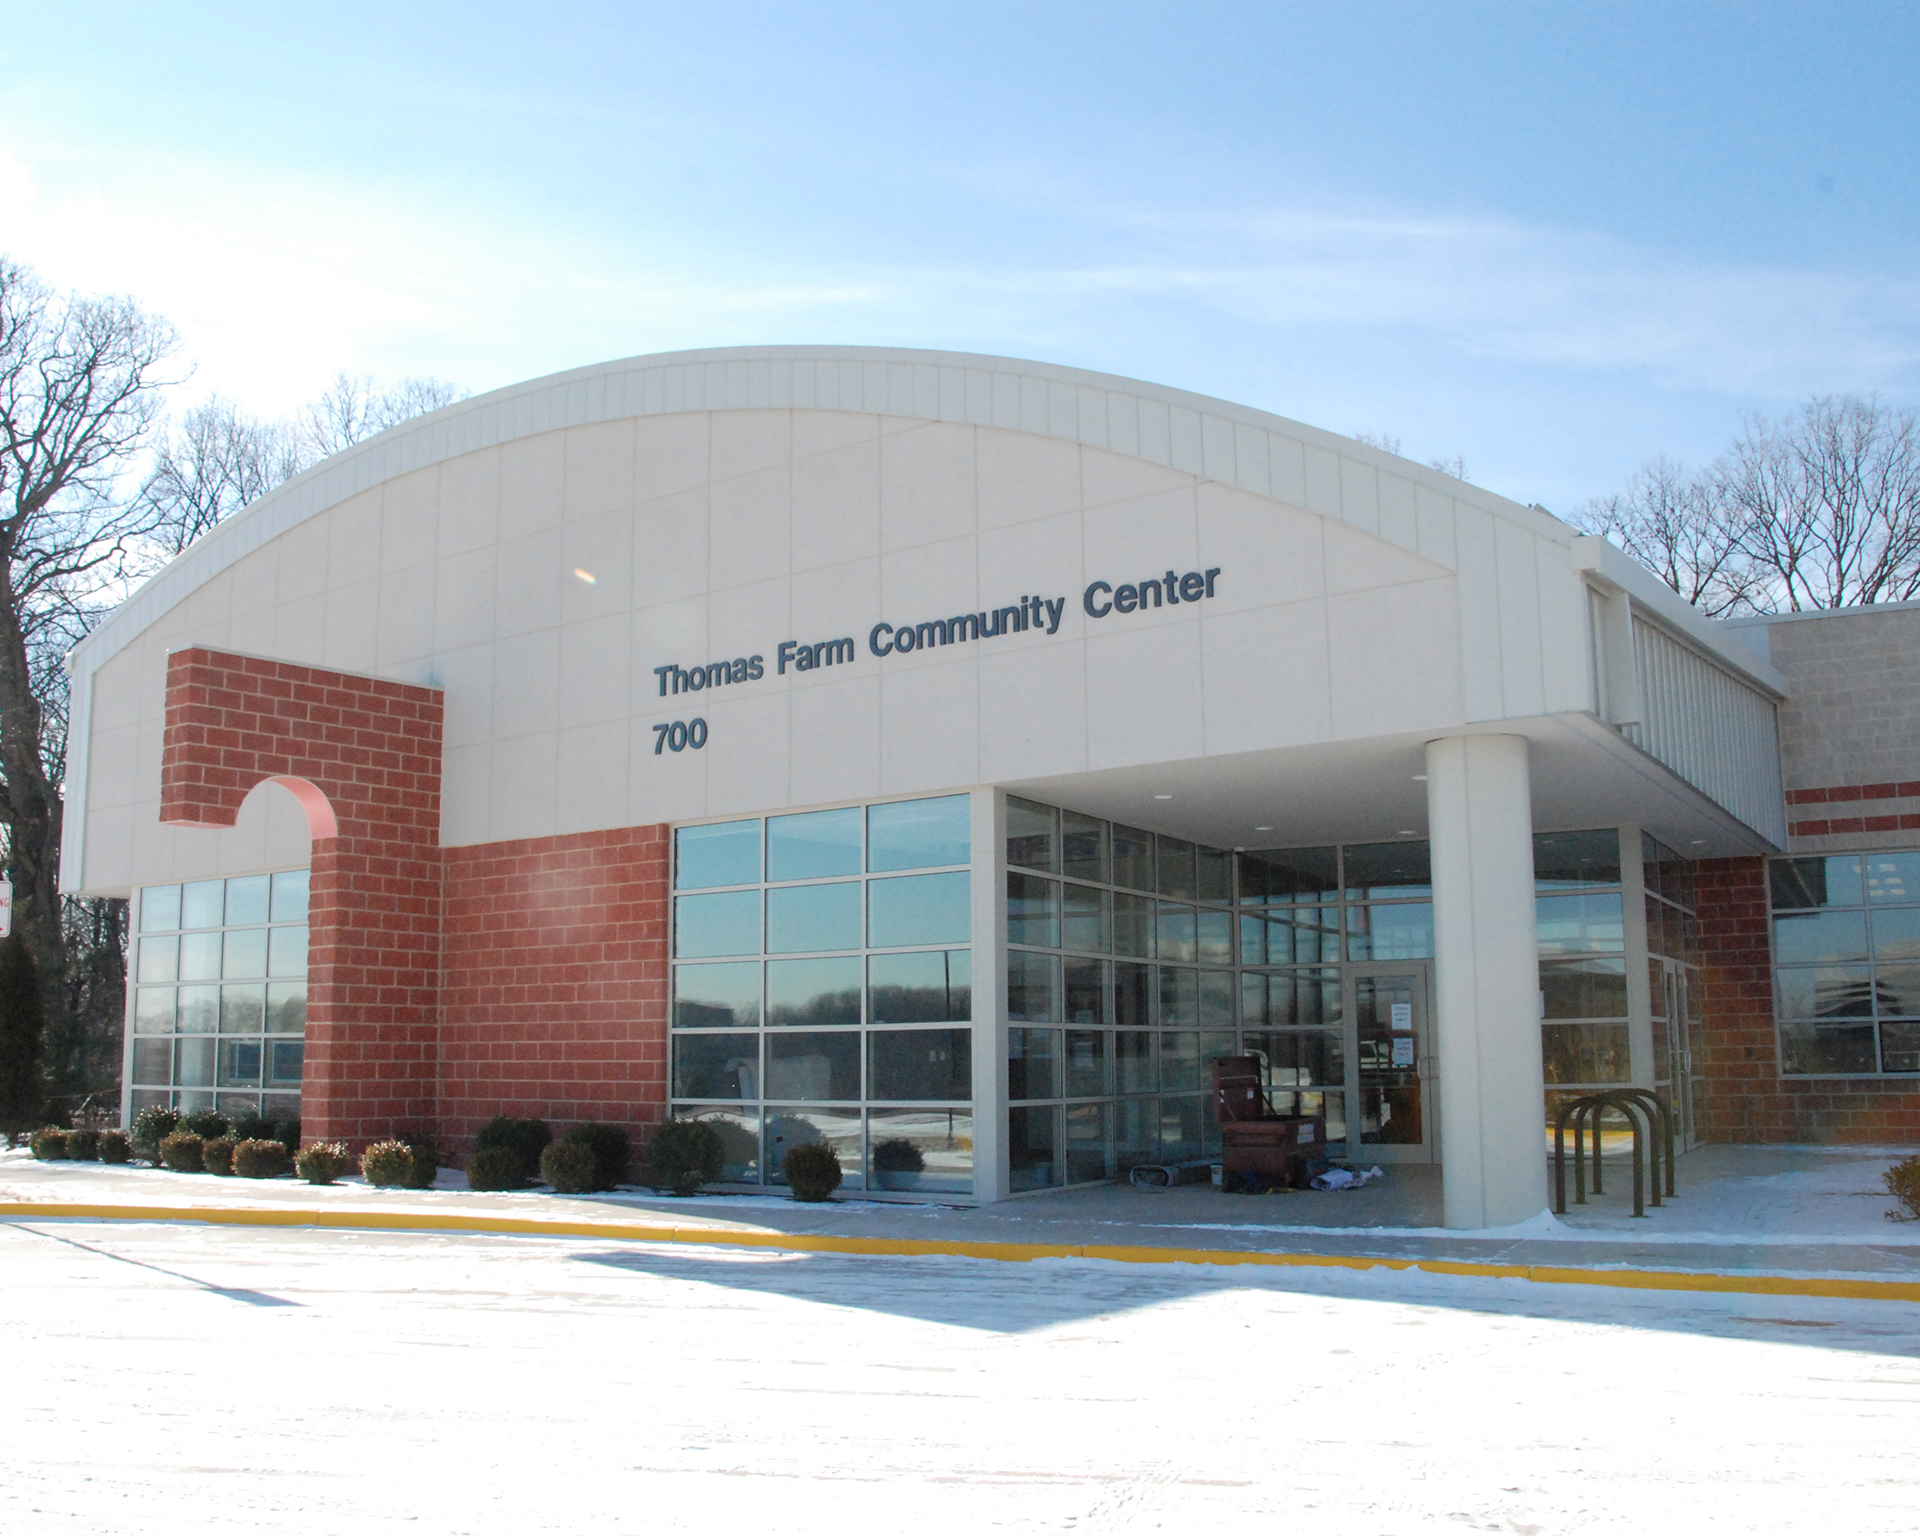 Thomas Farm Community Center Exterior